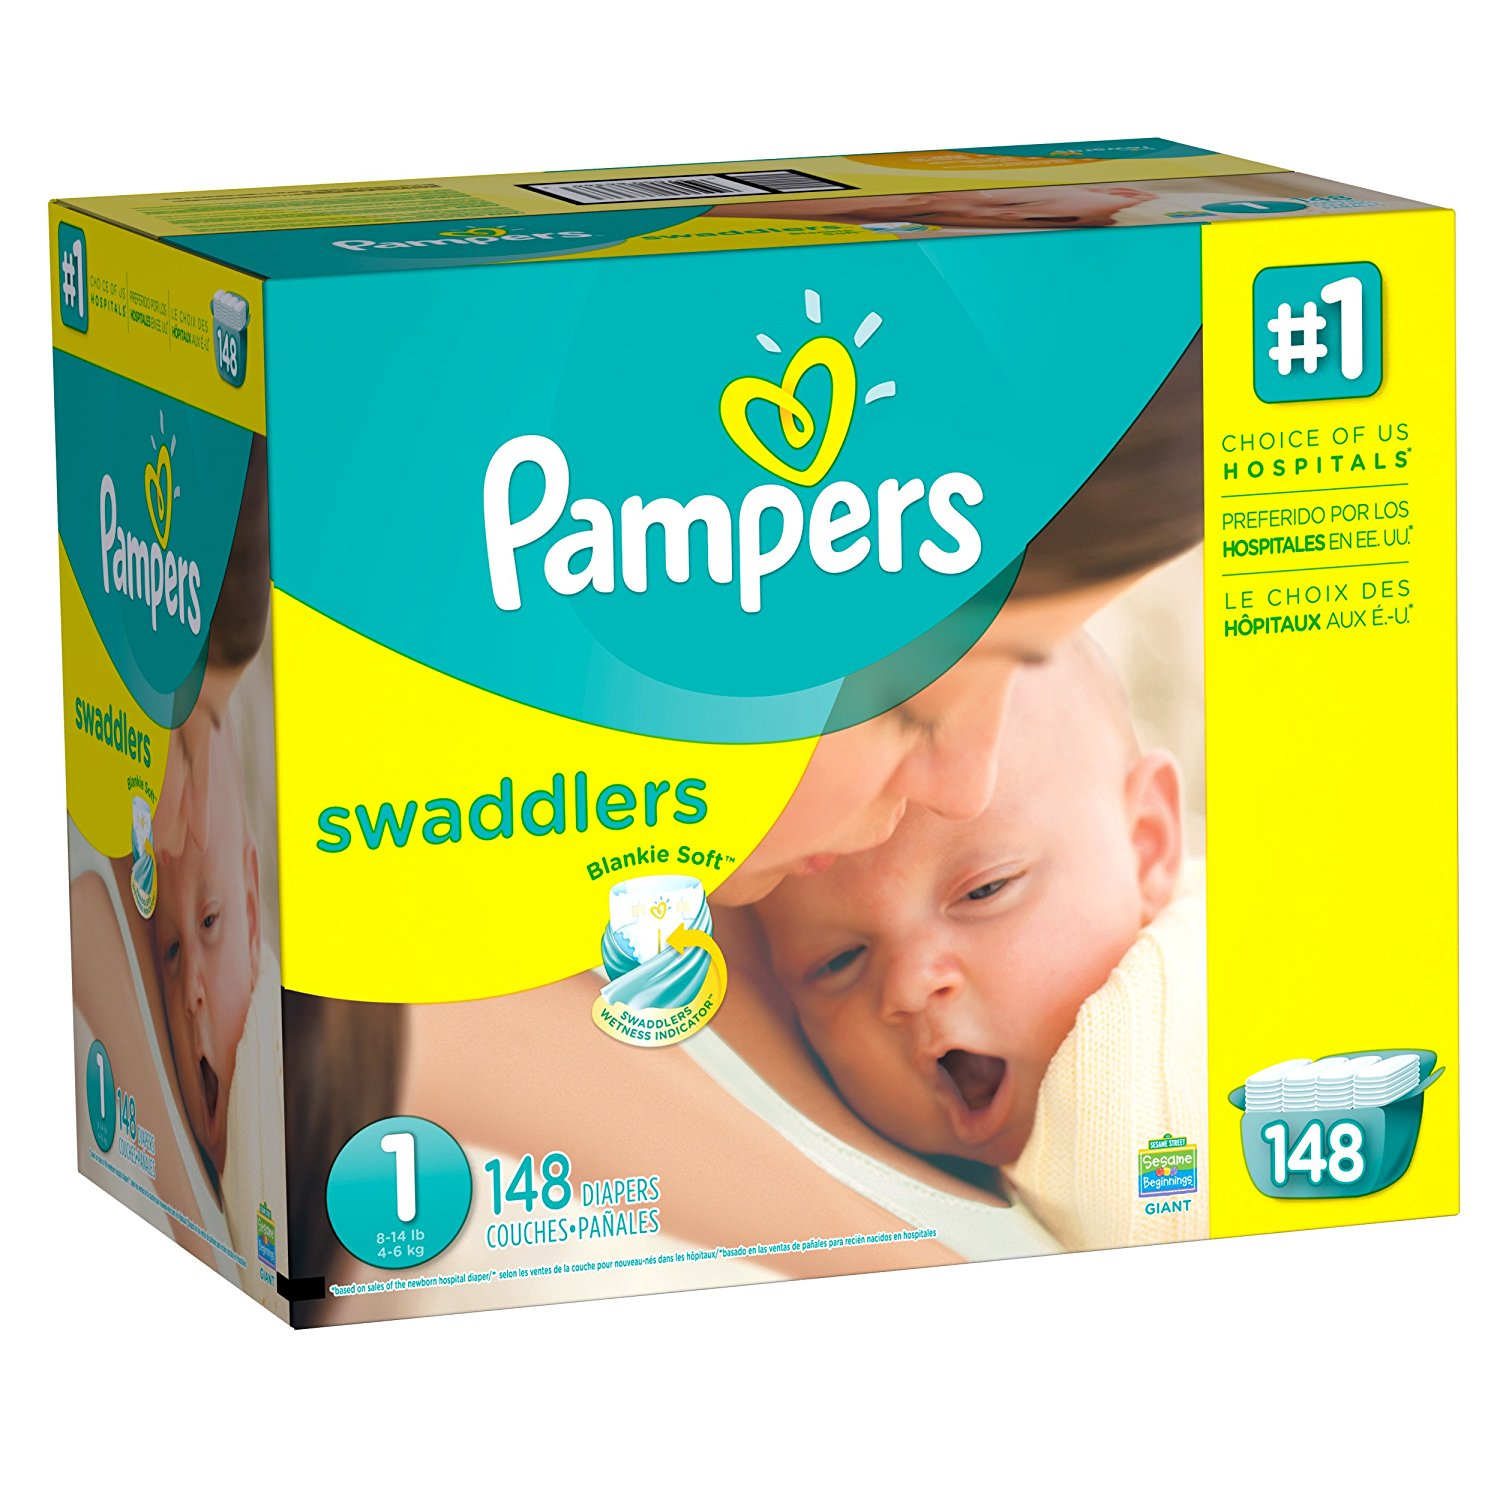 Top 10 Best Baby Diapers 2021 - Affordable Disposable Baby Diaper Reviews